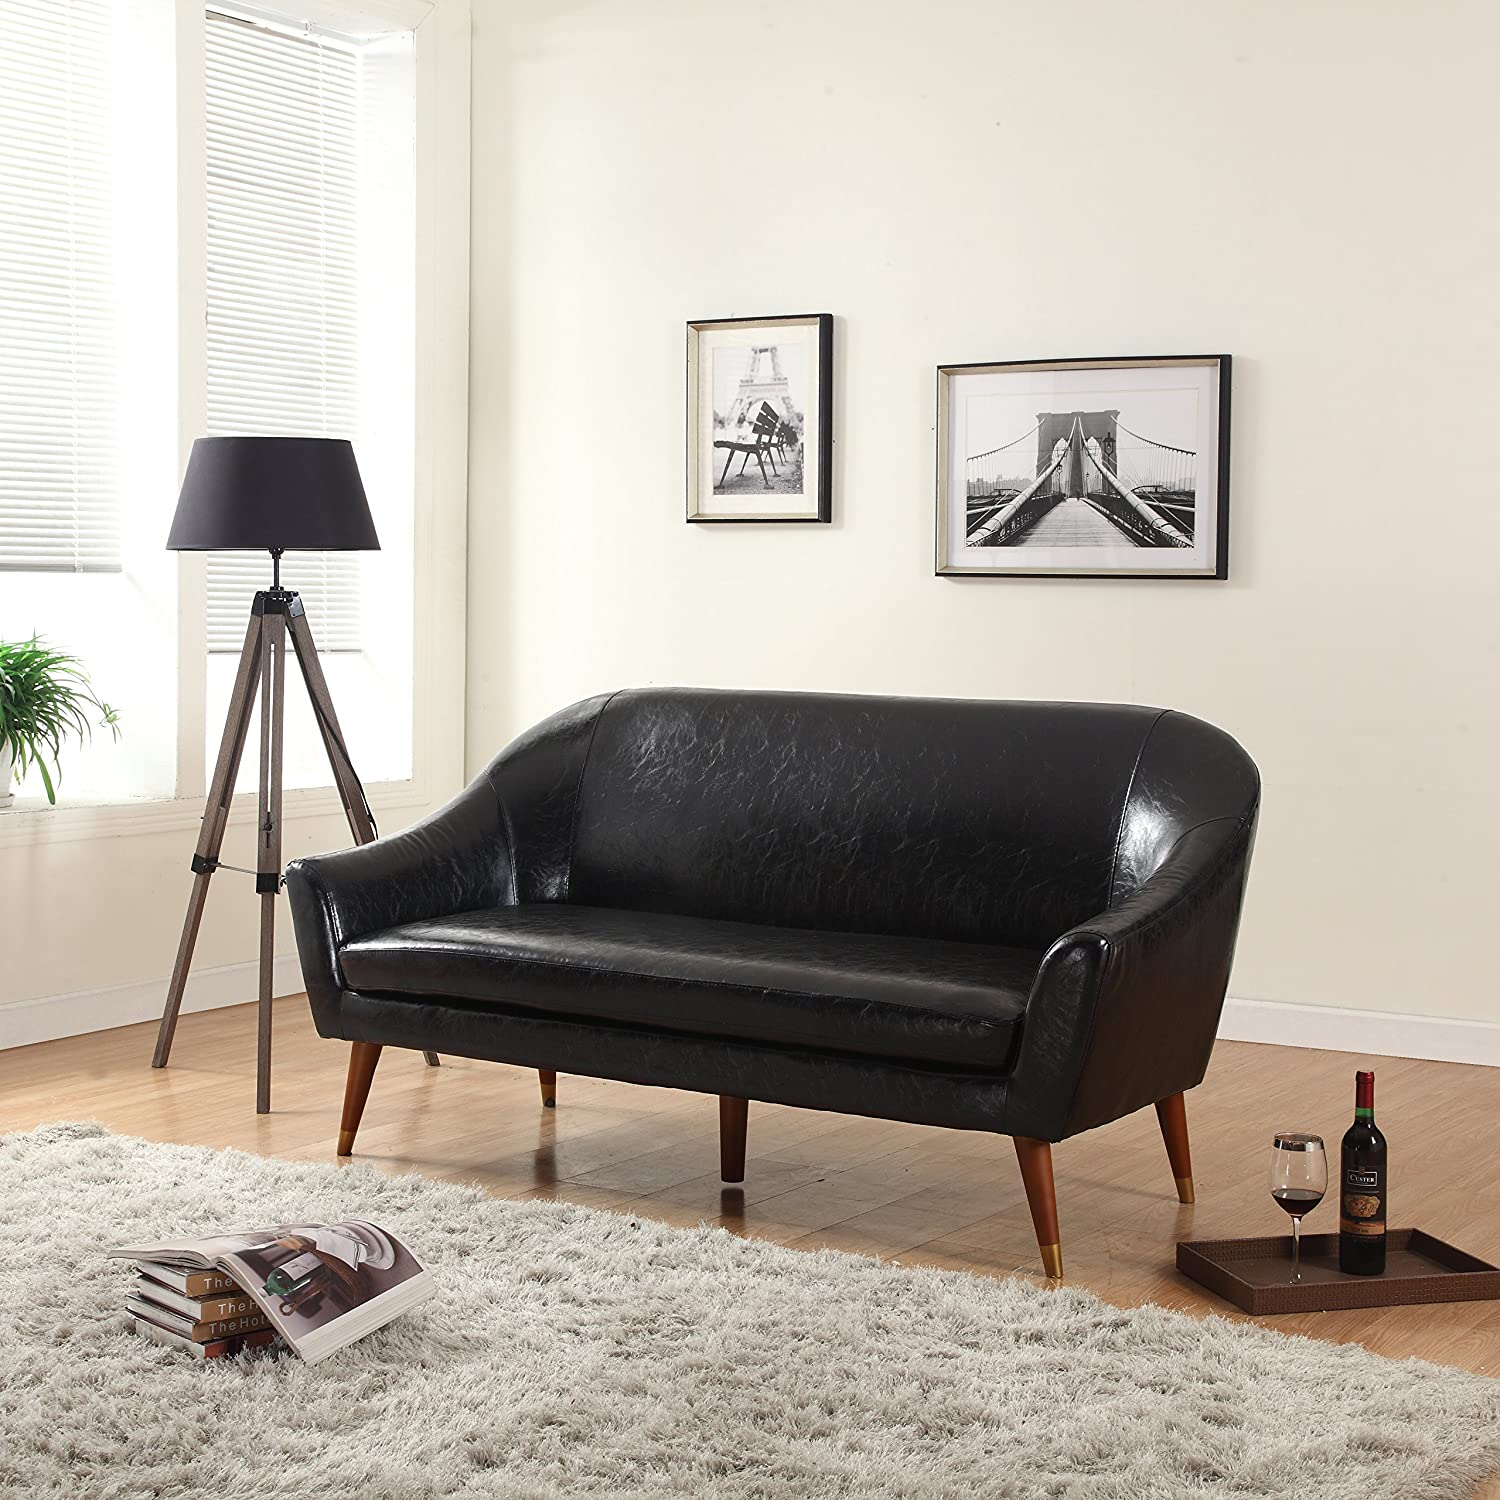 living room furniture amazon. Amazon com  Divano Roma Furniture Mid Century Modern Sofa Bonded Leather Kitchen Dining